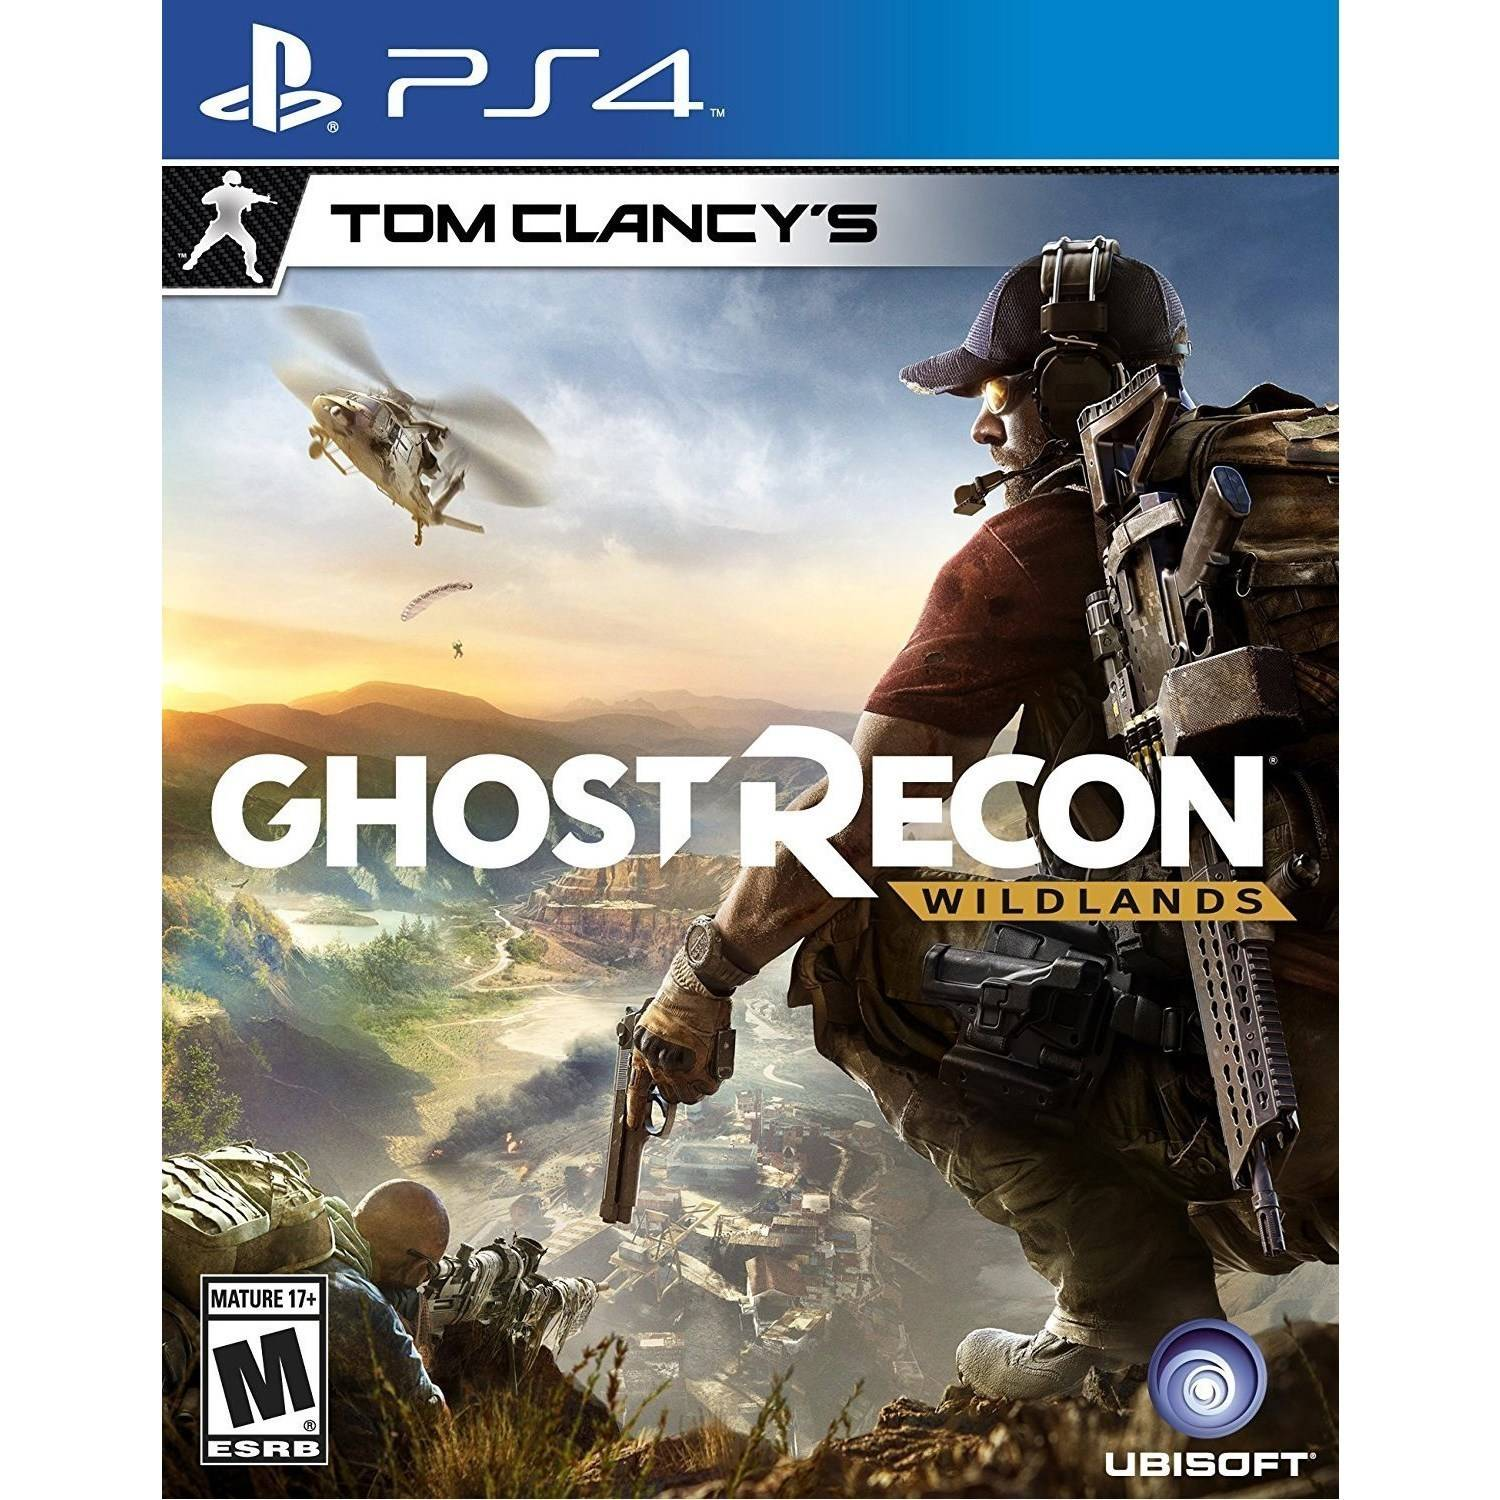 Tom Clancy's Ghost Recon Wildlands (Playstation 4) by Ubisoft